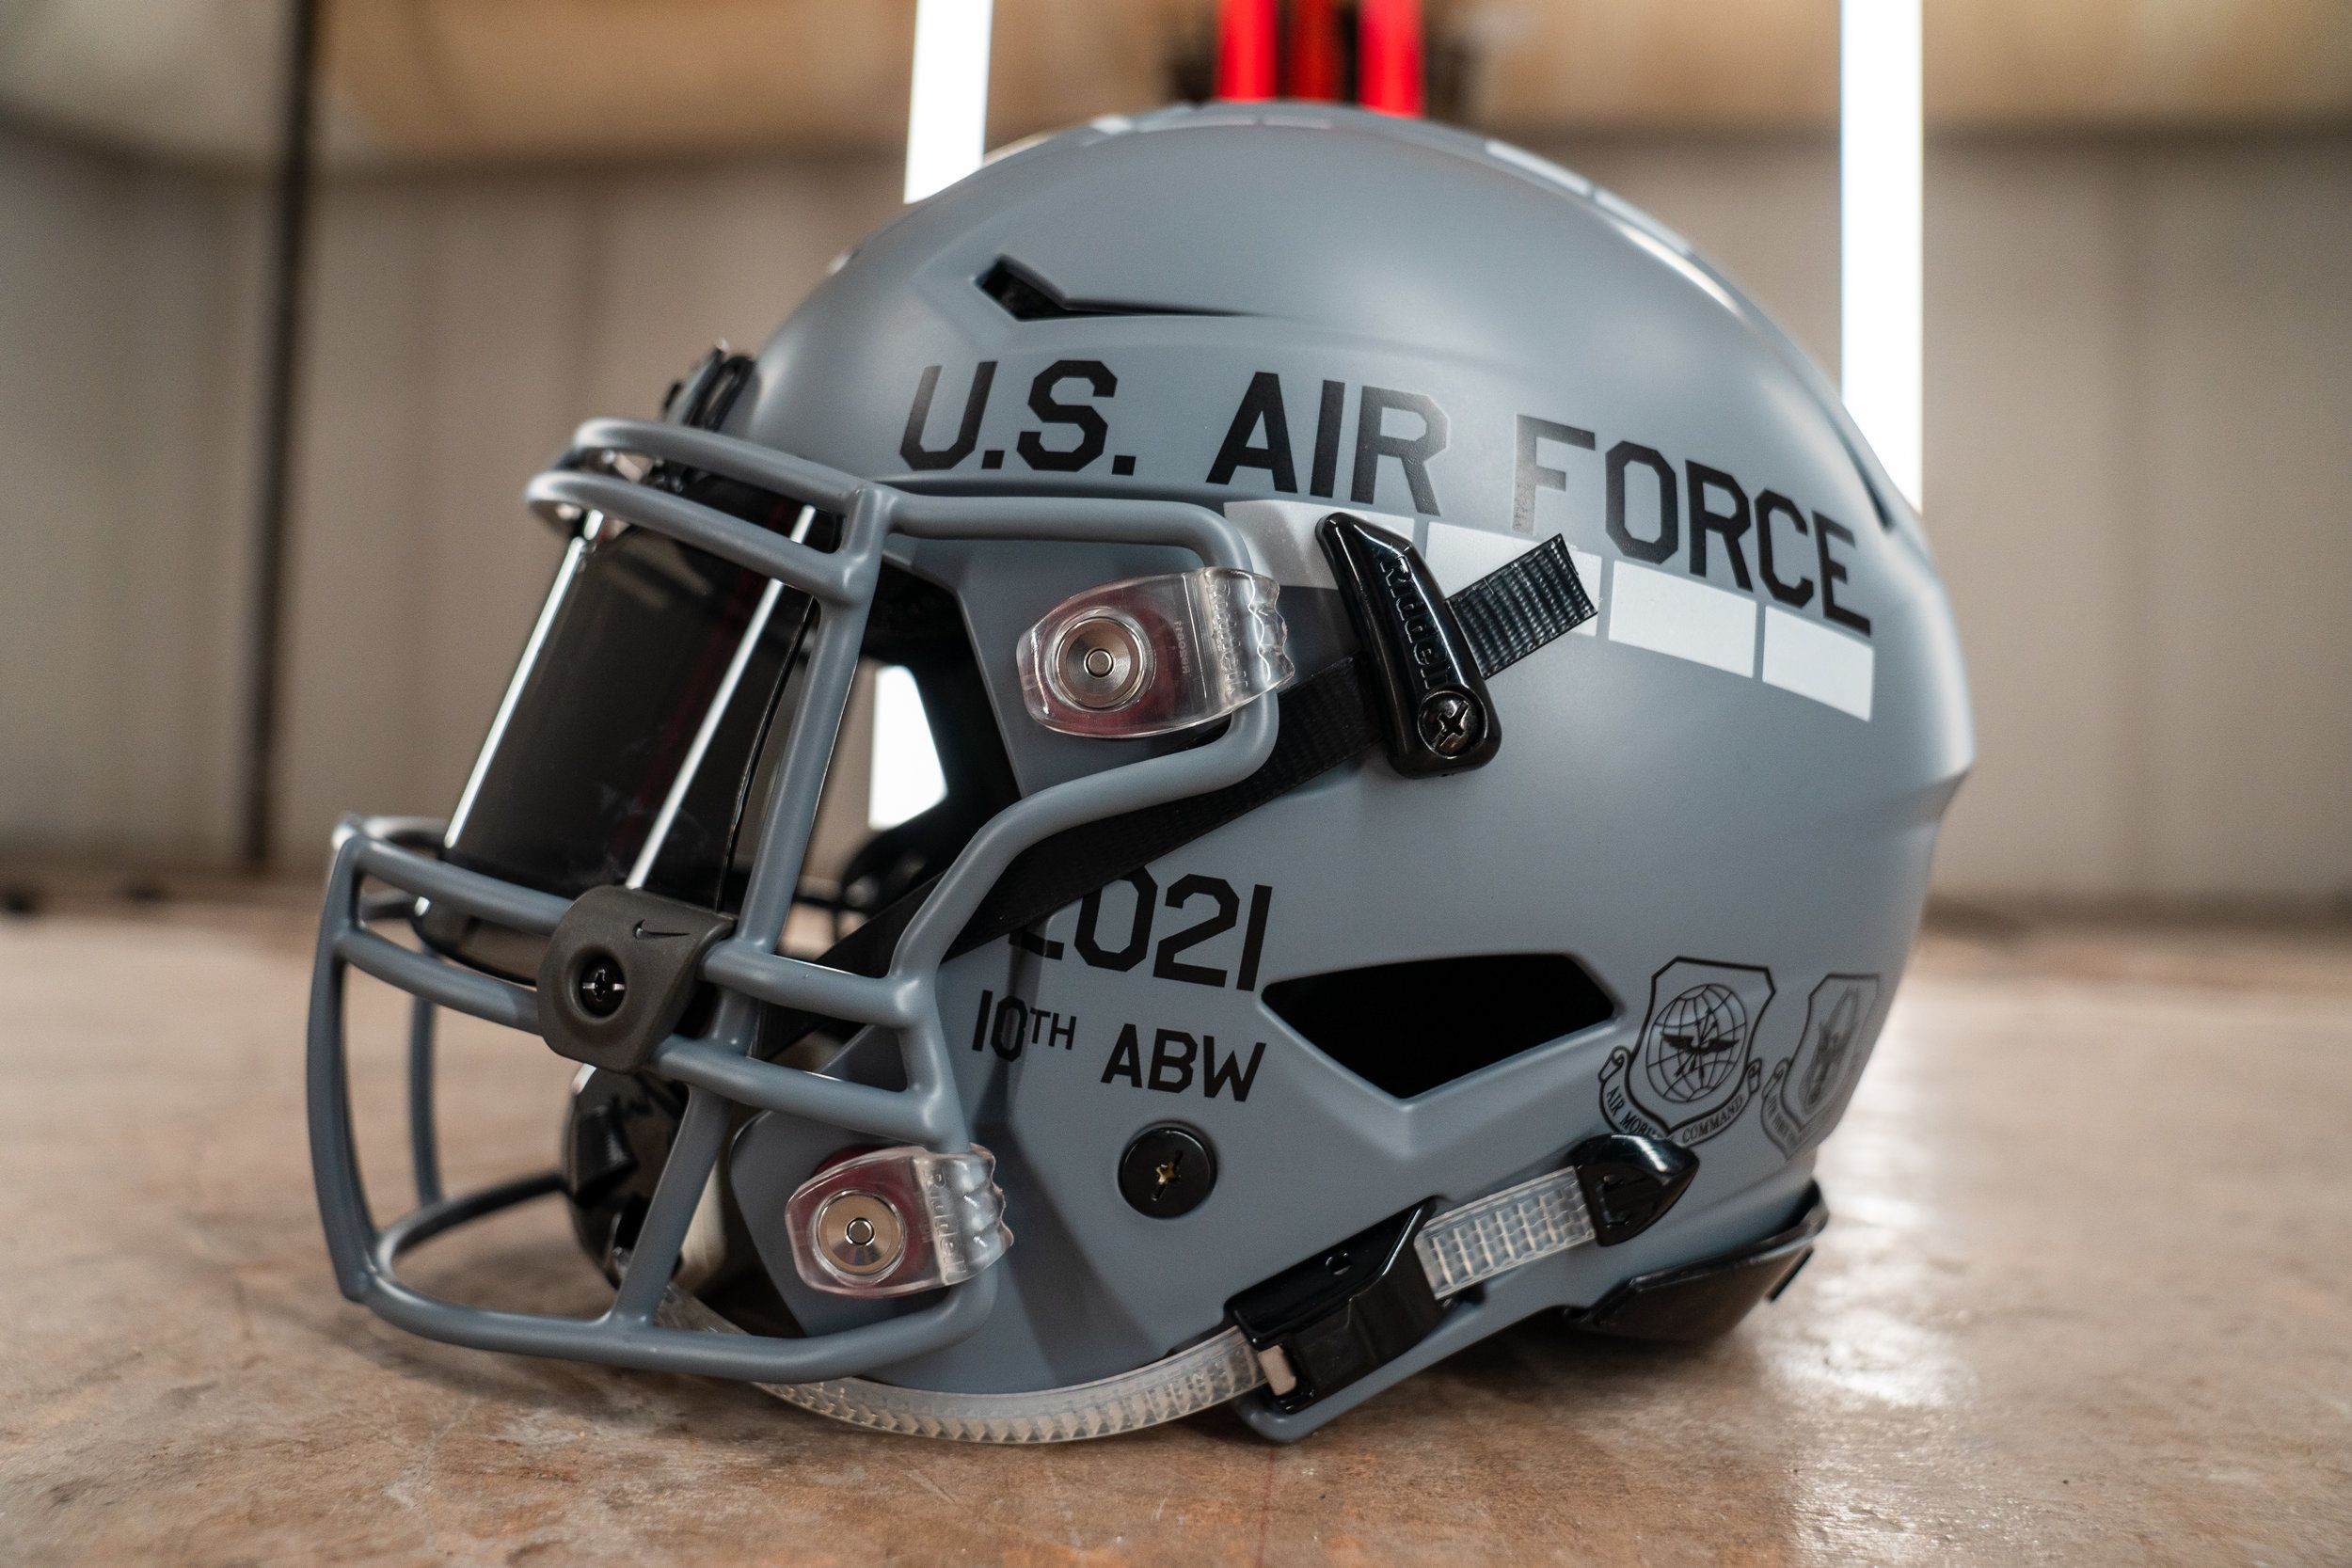 One of THE most amazing helmets we've ever seen. For the